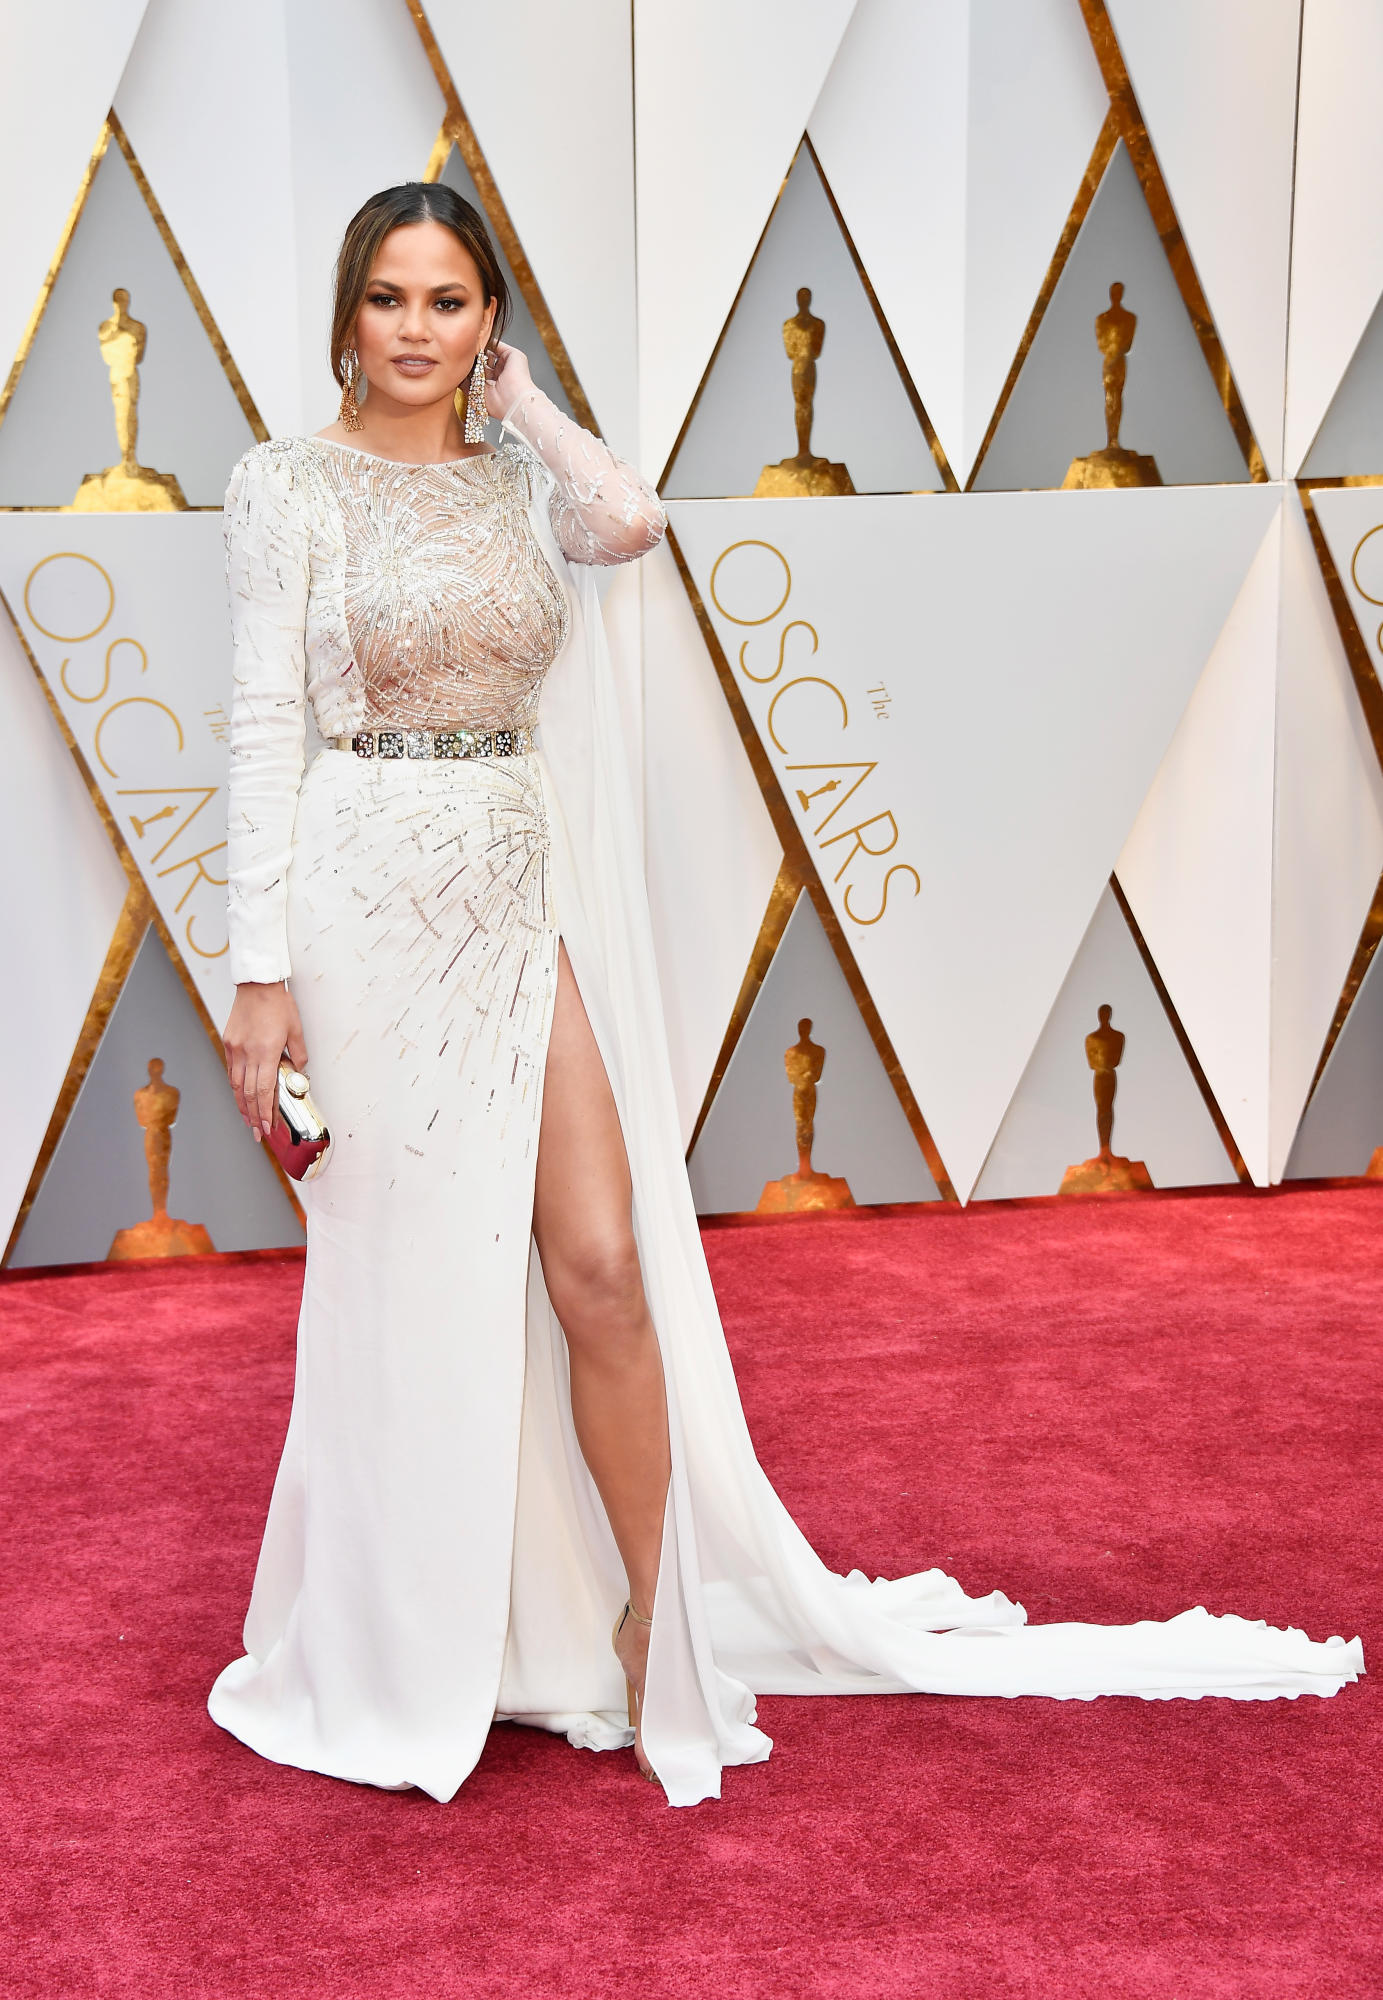 The sheer panel is a smidge distracting but I loved the long sleeve and the high slit. Chrissy Teigen in Zuhair Murad